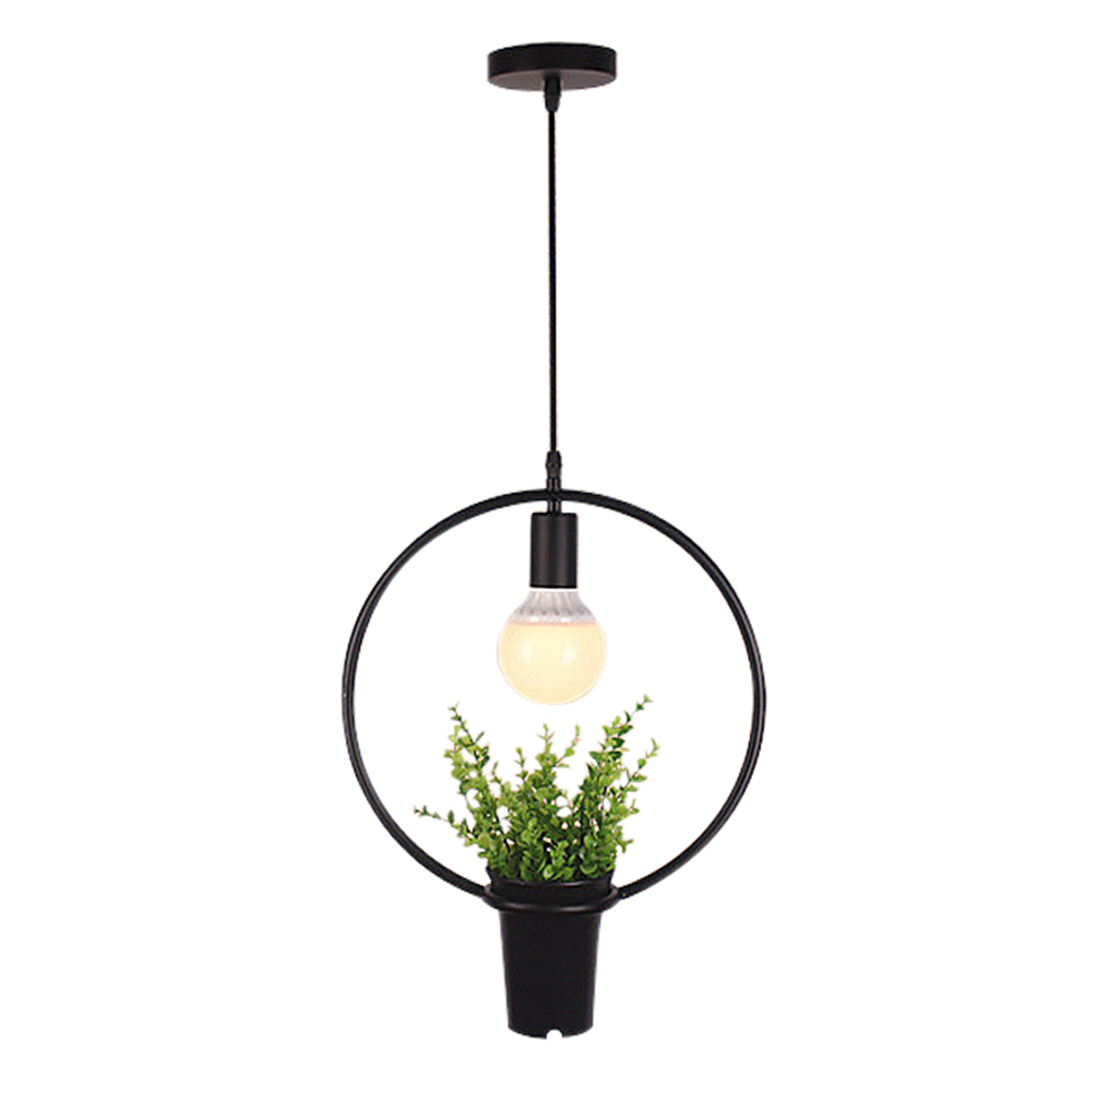 LICG-Black Ring Green Plant Hanging Lamps Retro Industrial Wind Creative Personality Chandelier Clothing Shop Cafe Restaurant LICG-Black Ring Green Plant Hanging Lamps Retro Industrial Wind Creative Personality Chandelier Clothing Shop Cafe Restaurant